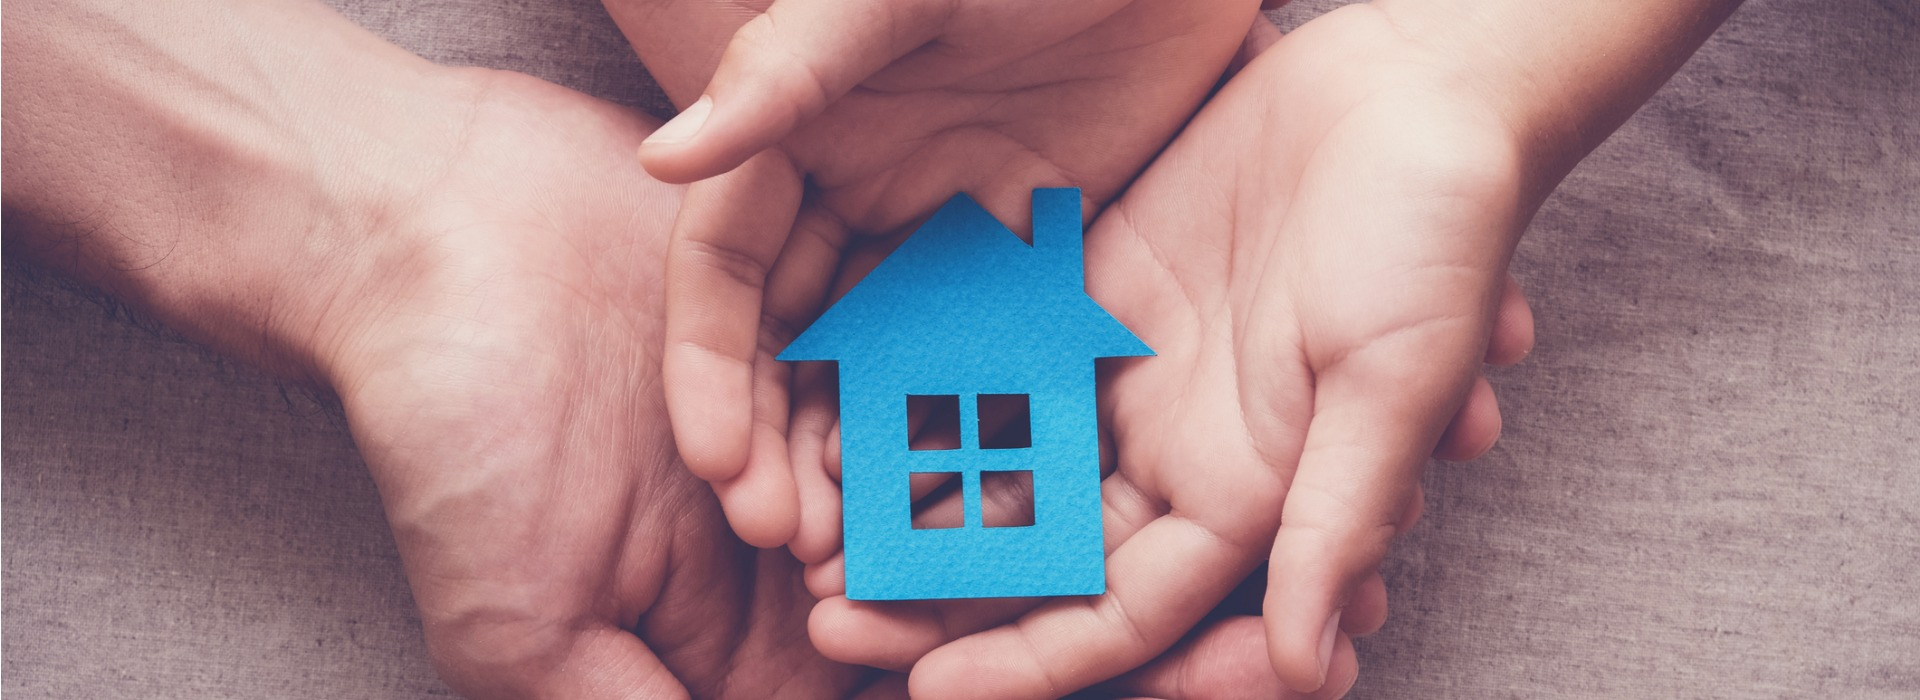 adult-and-child-hands-holding-paper-house-family-home-and-homeless-picture-id953686240.jpg